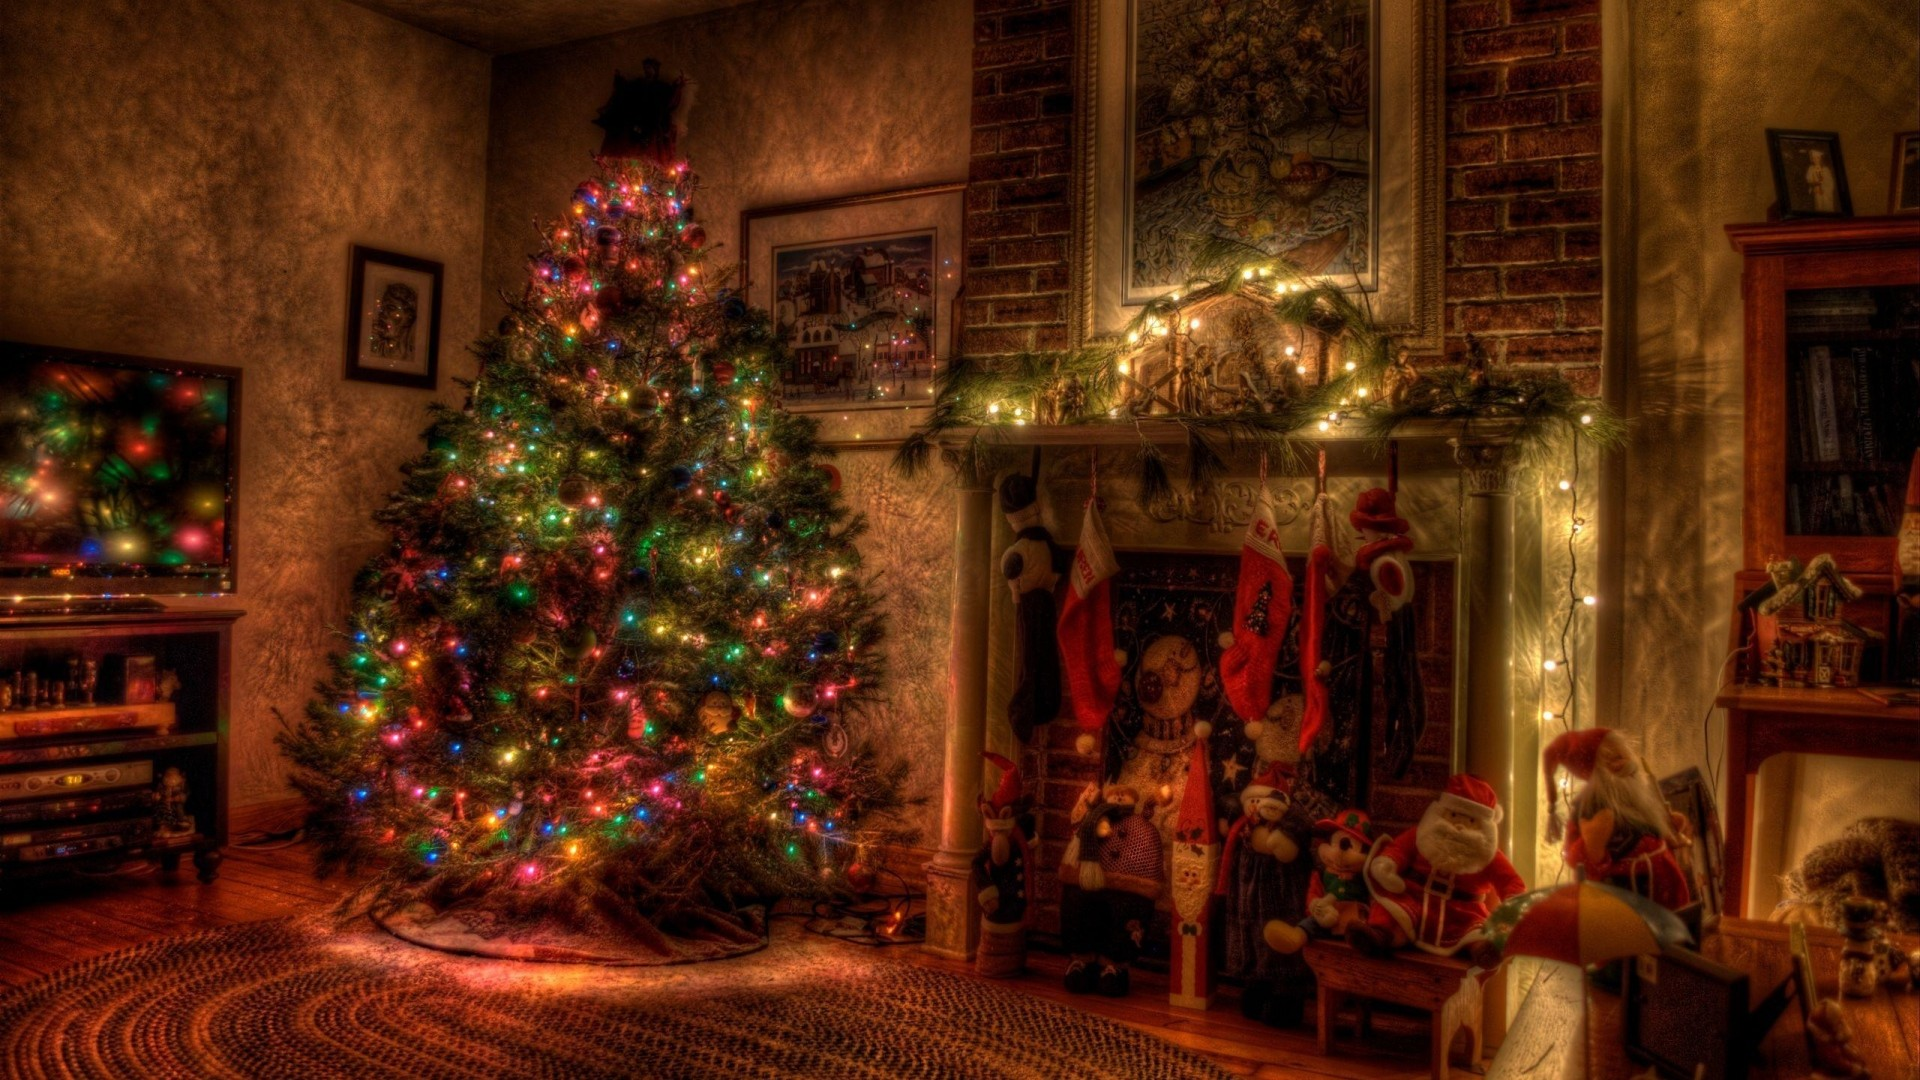 hd christmas wallpaper 1920x1080 (67+ images)